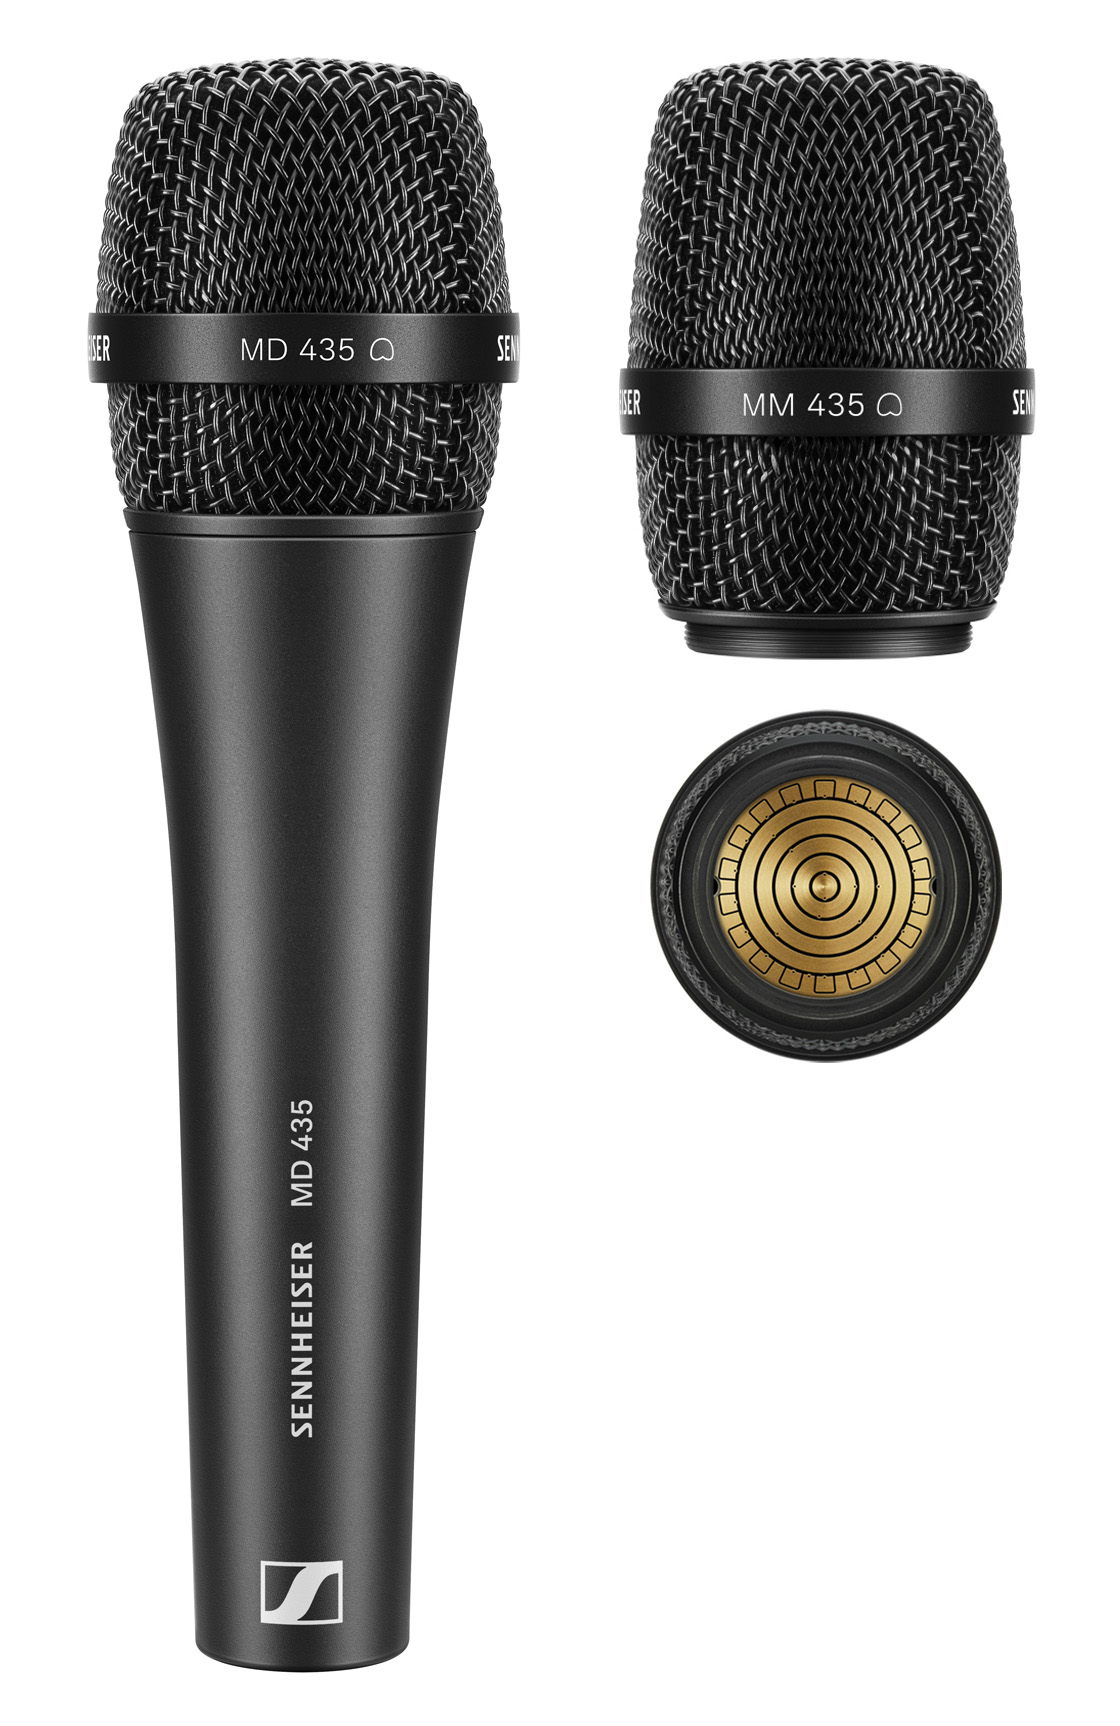 The wired MD 435 cardioid vocal microphone and the MM 435 microphone head (pictured with the capsule interface) for use with Sennheiser wireless transmitters